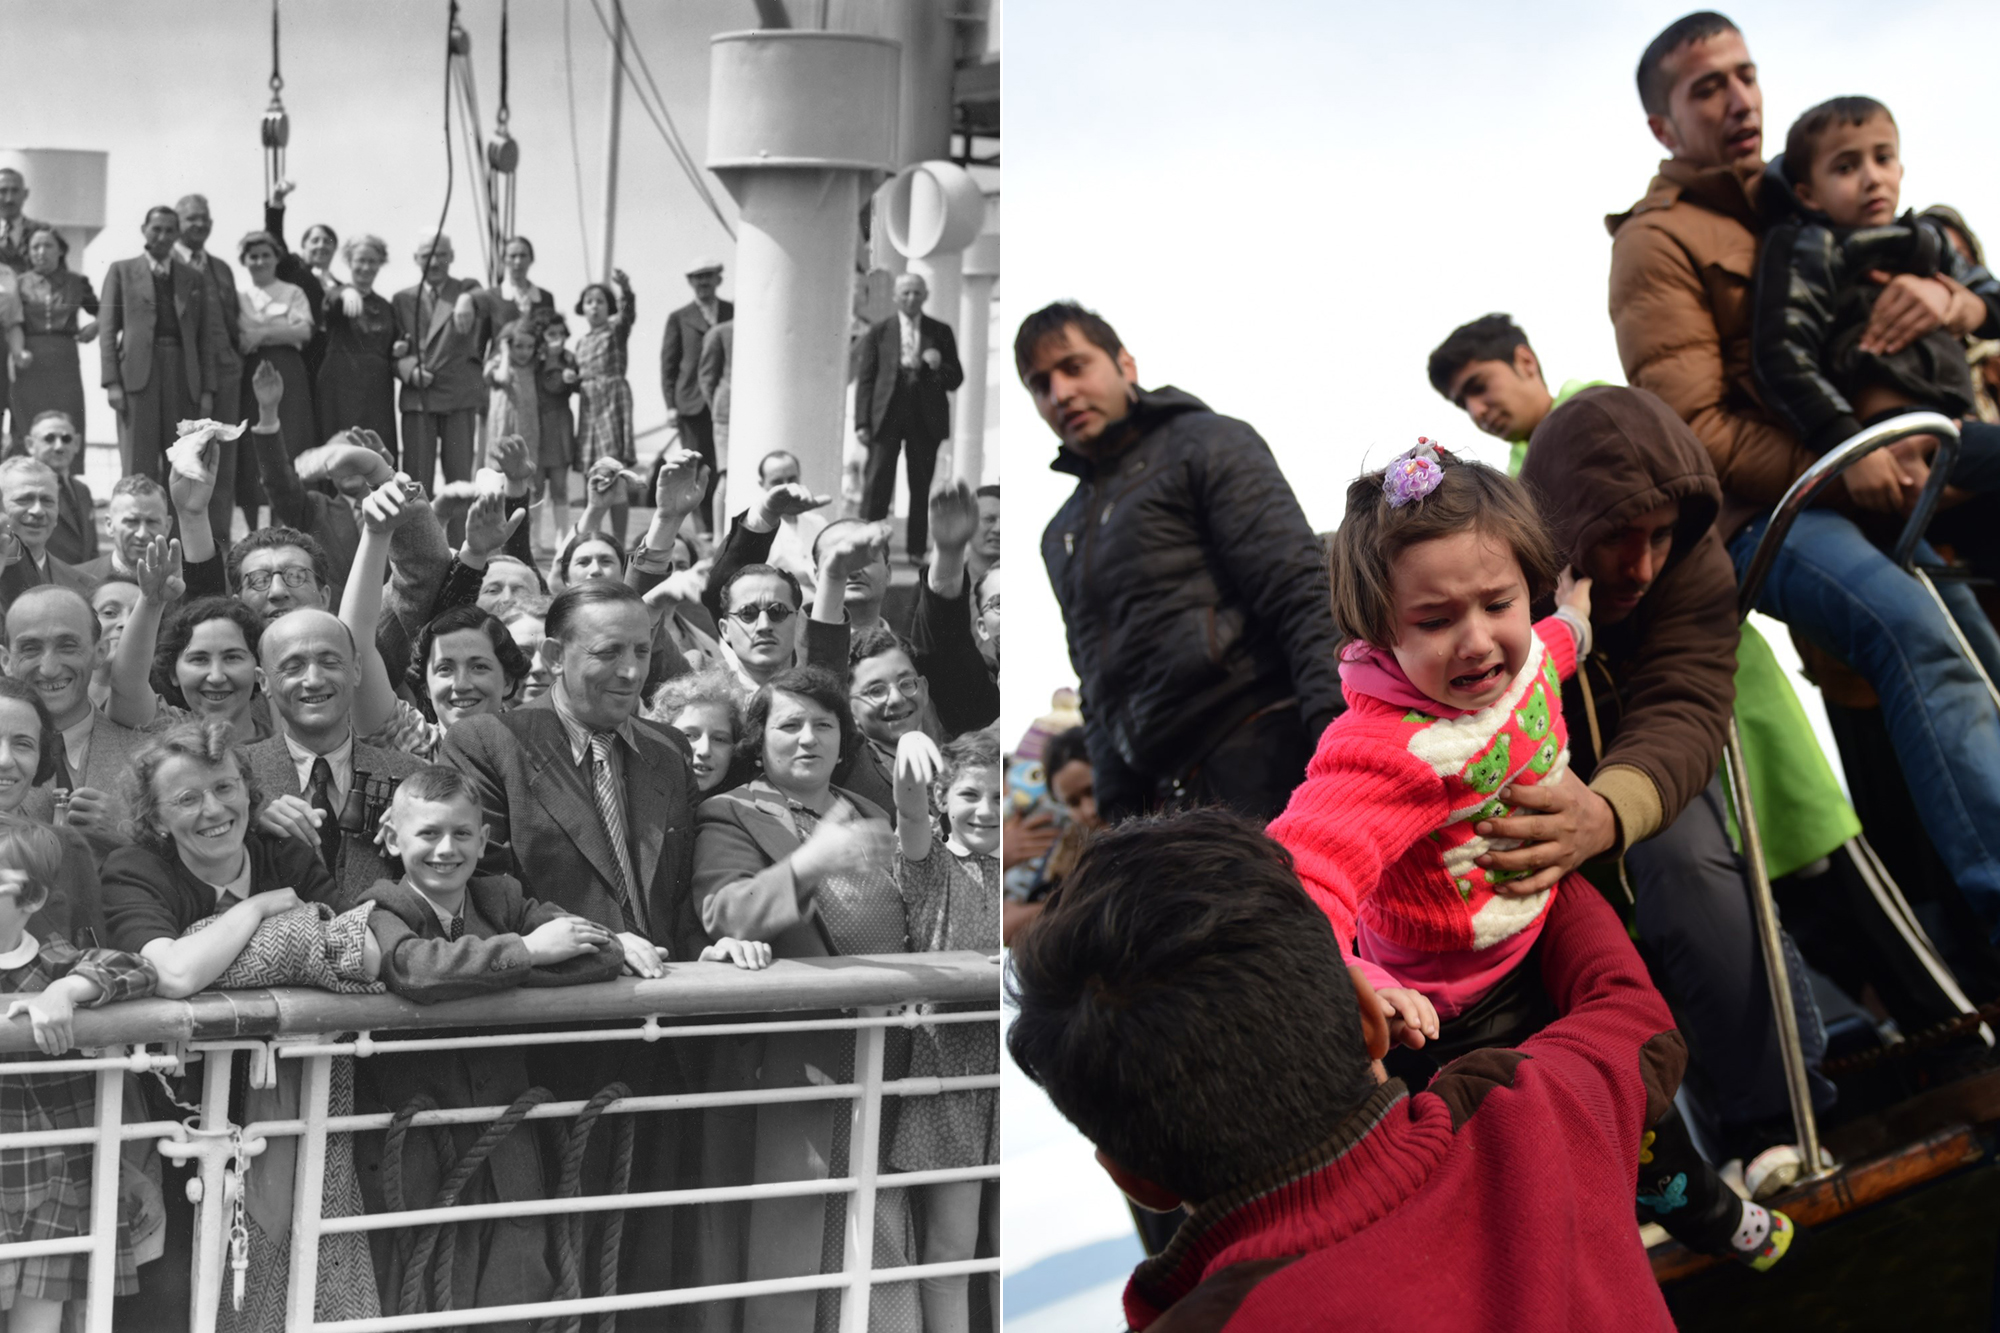 From left: Some of the 700 Jewish refugees aboard the Hamburg-America liner St. Louis on arrival at Antwerp, Belgium on June 17, 1939. A child is lifted off, as migrants and refugees disembark on the Greek island of Lesbos on Nov. 16, 2015.